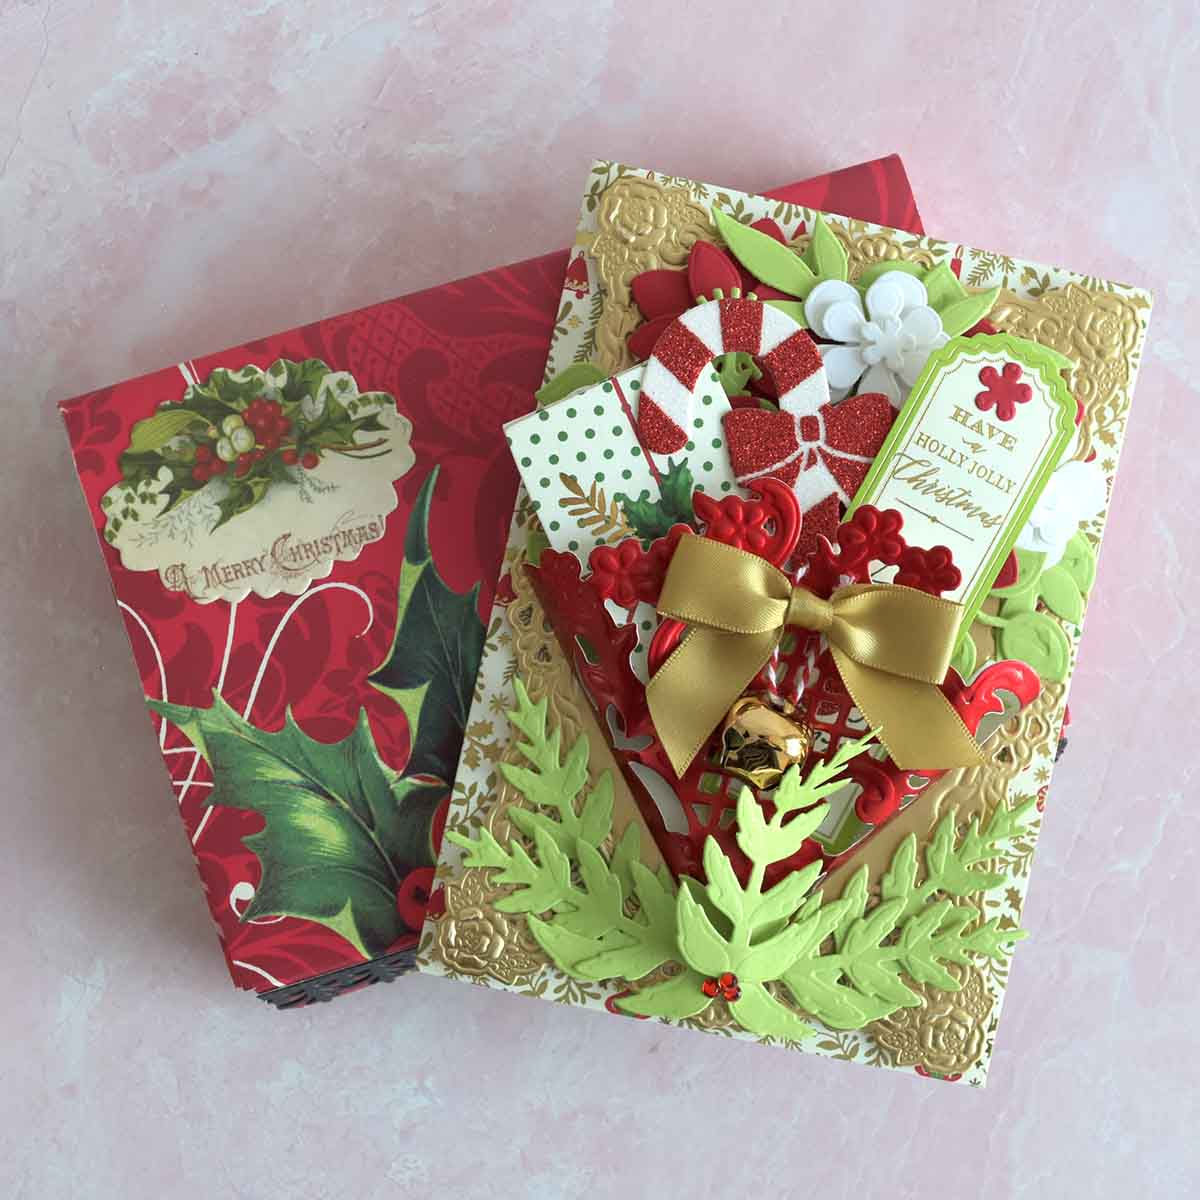 White and gold patterned Christmas card with gold layer, red foil tussy mussy, red and white flowers and a Have a Holly Jolly Christmas sentiment.